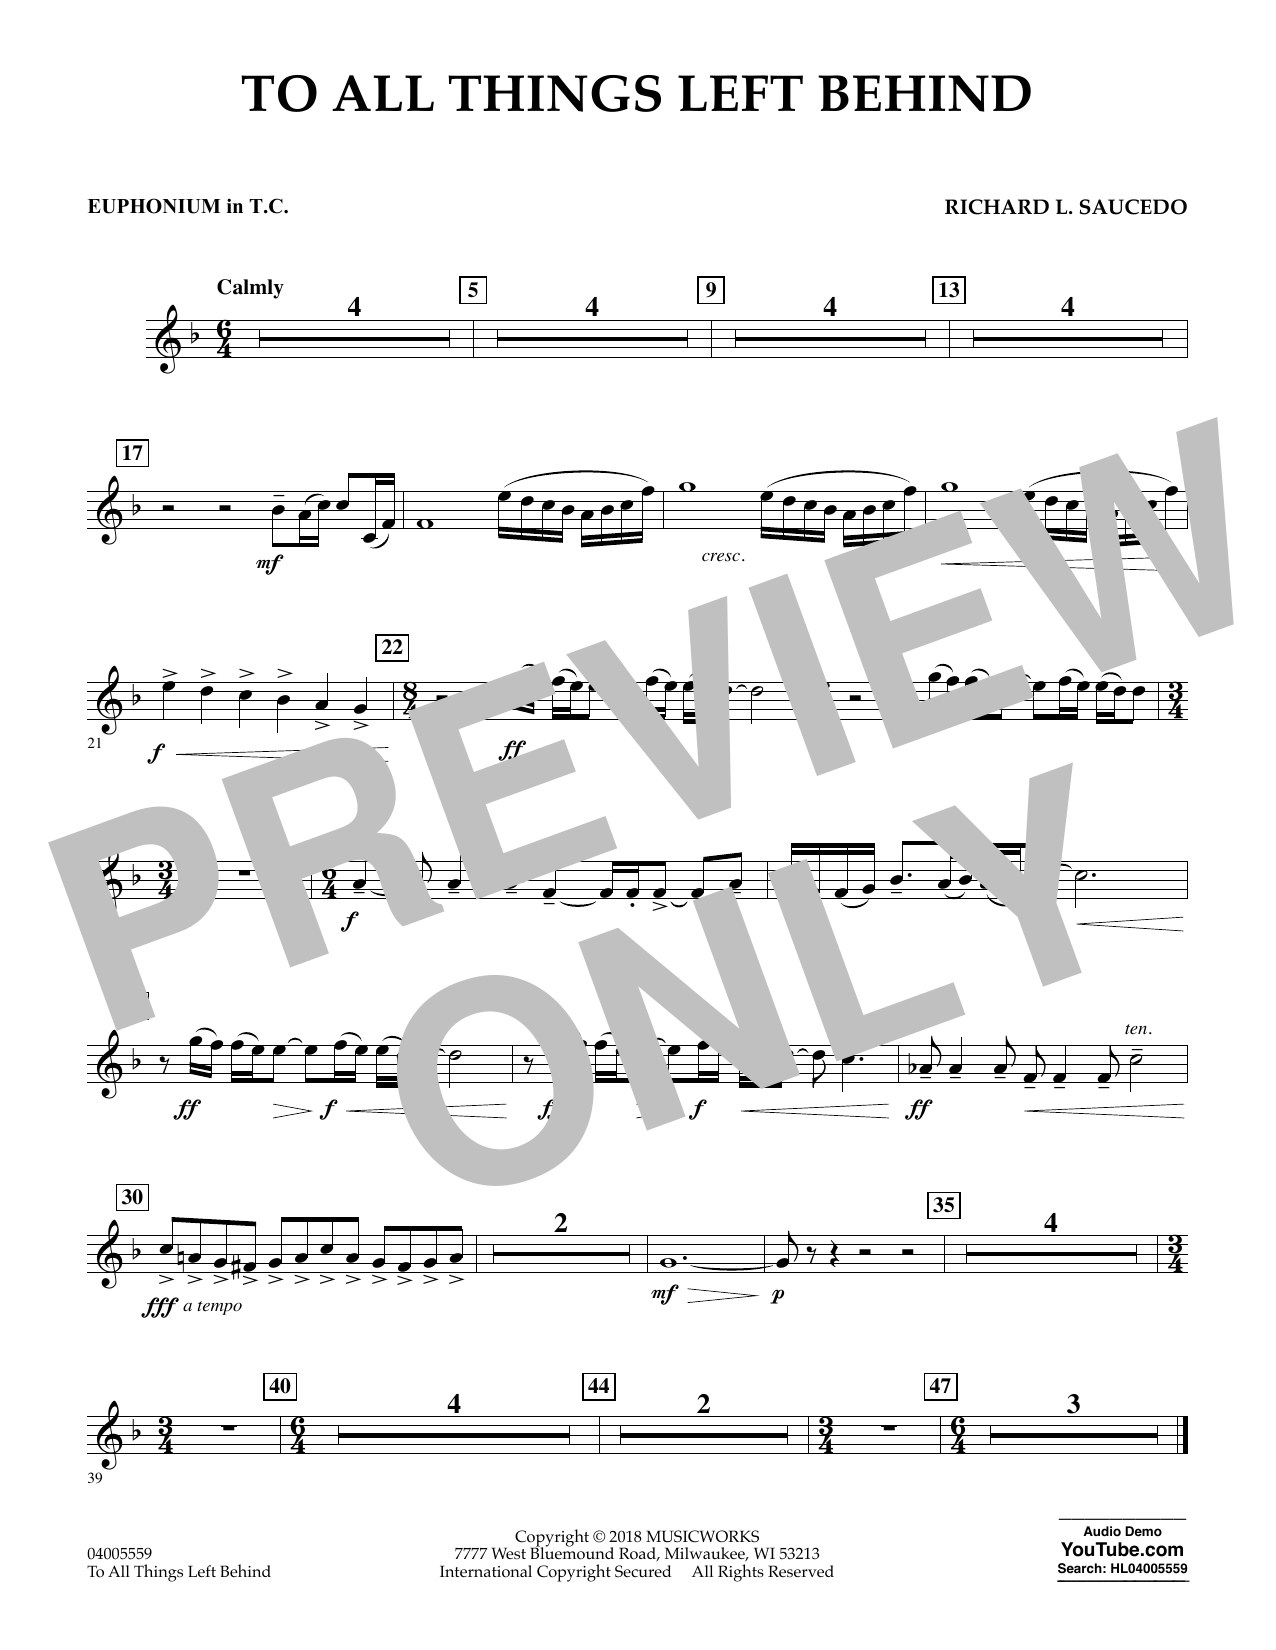 To All Things Left Behind - Euphonium in Treble Clef (Concert Band)